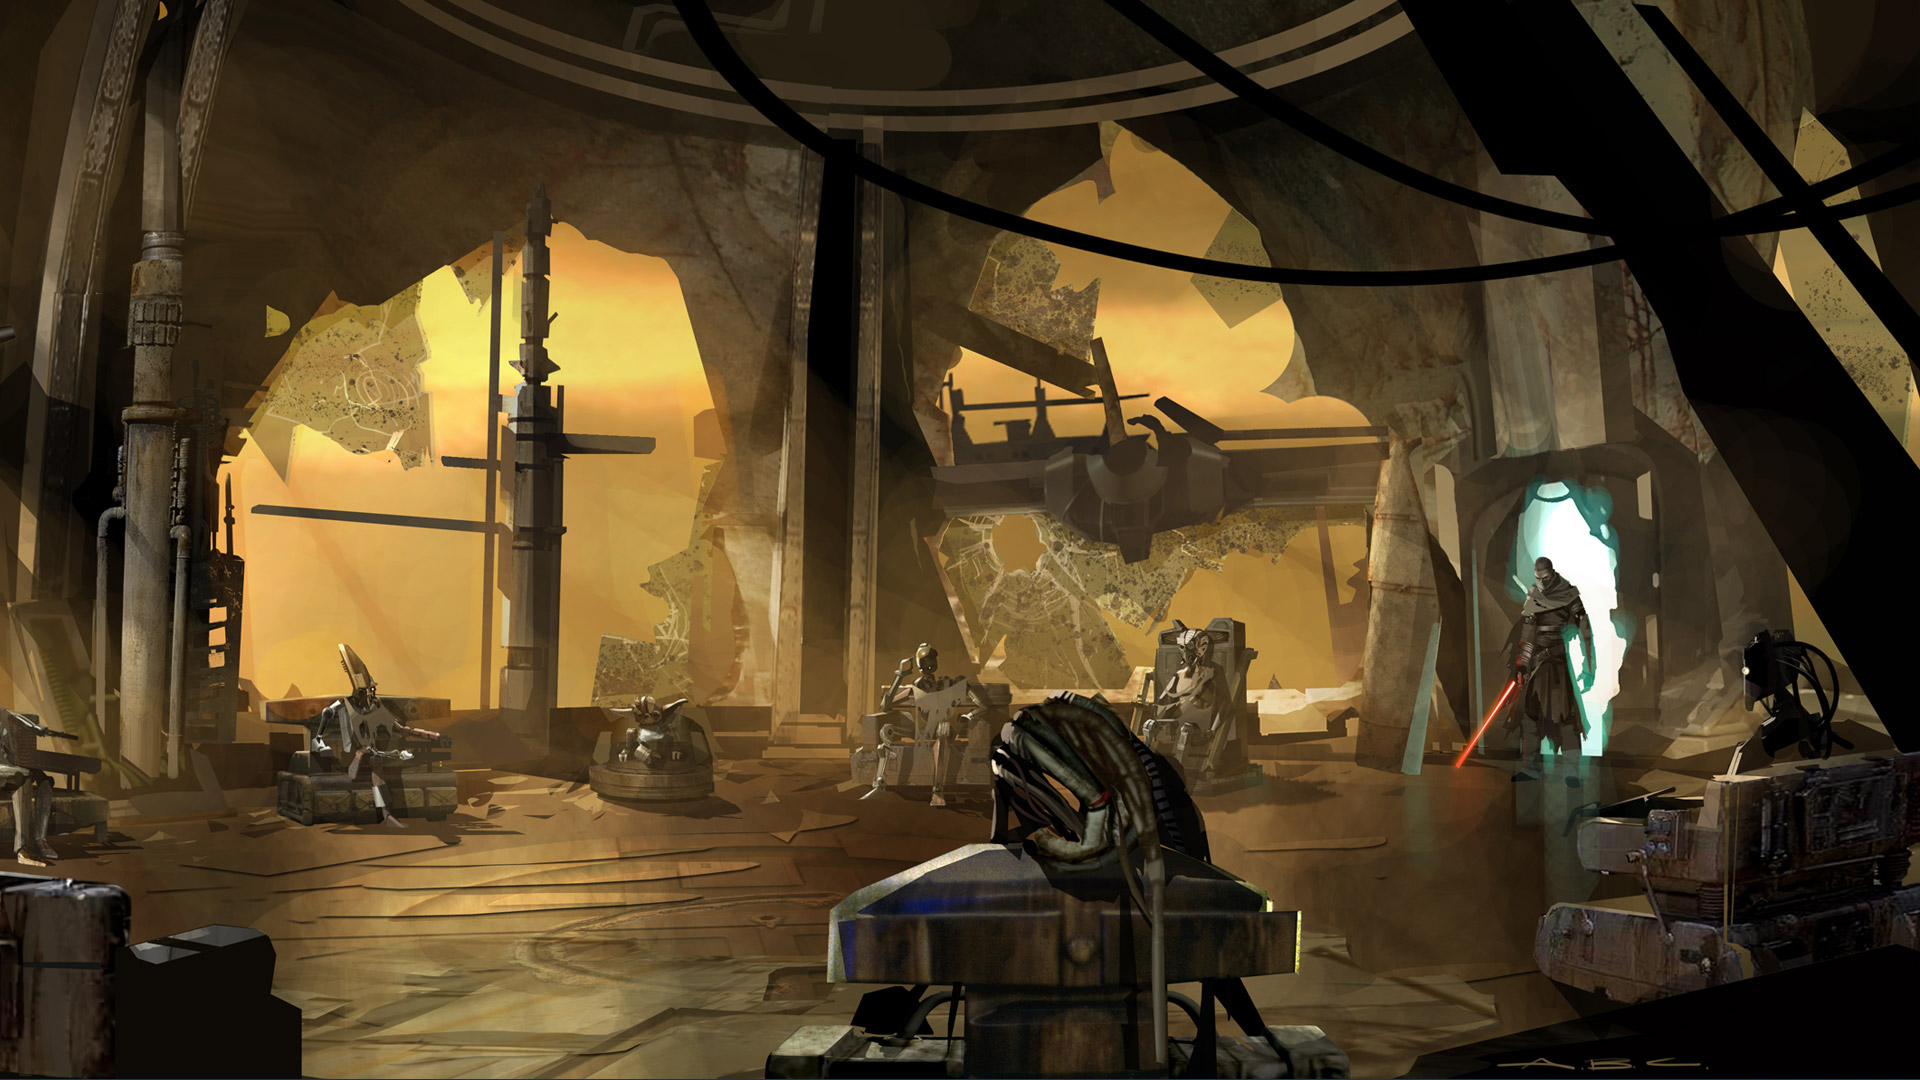 Free Star Wars: The Force Unleashed Wallpaper in 1920x1080